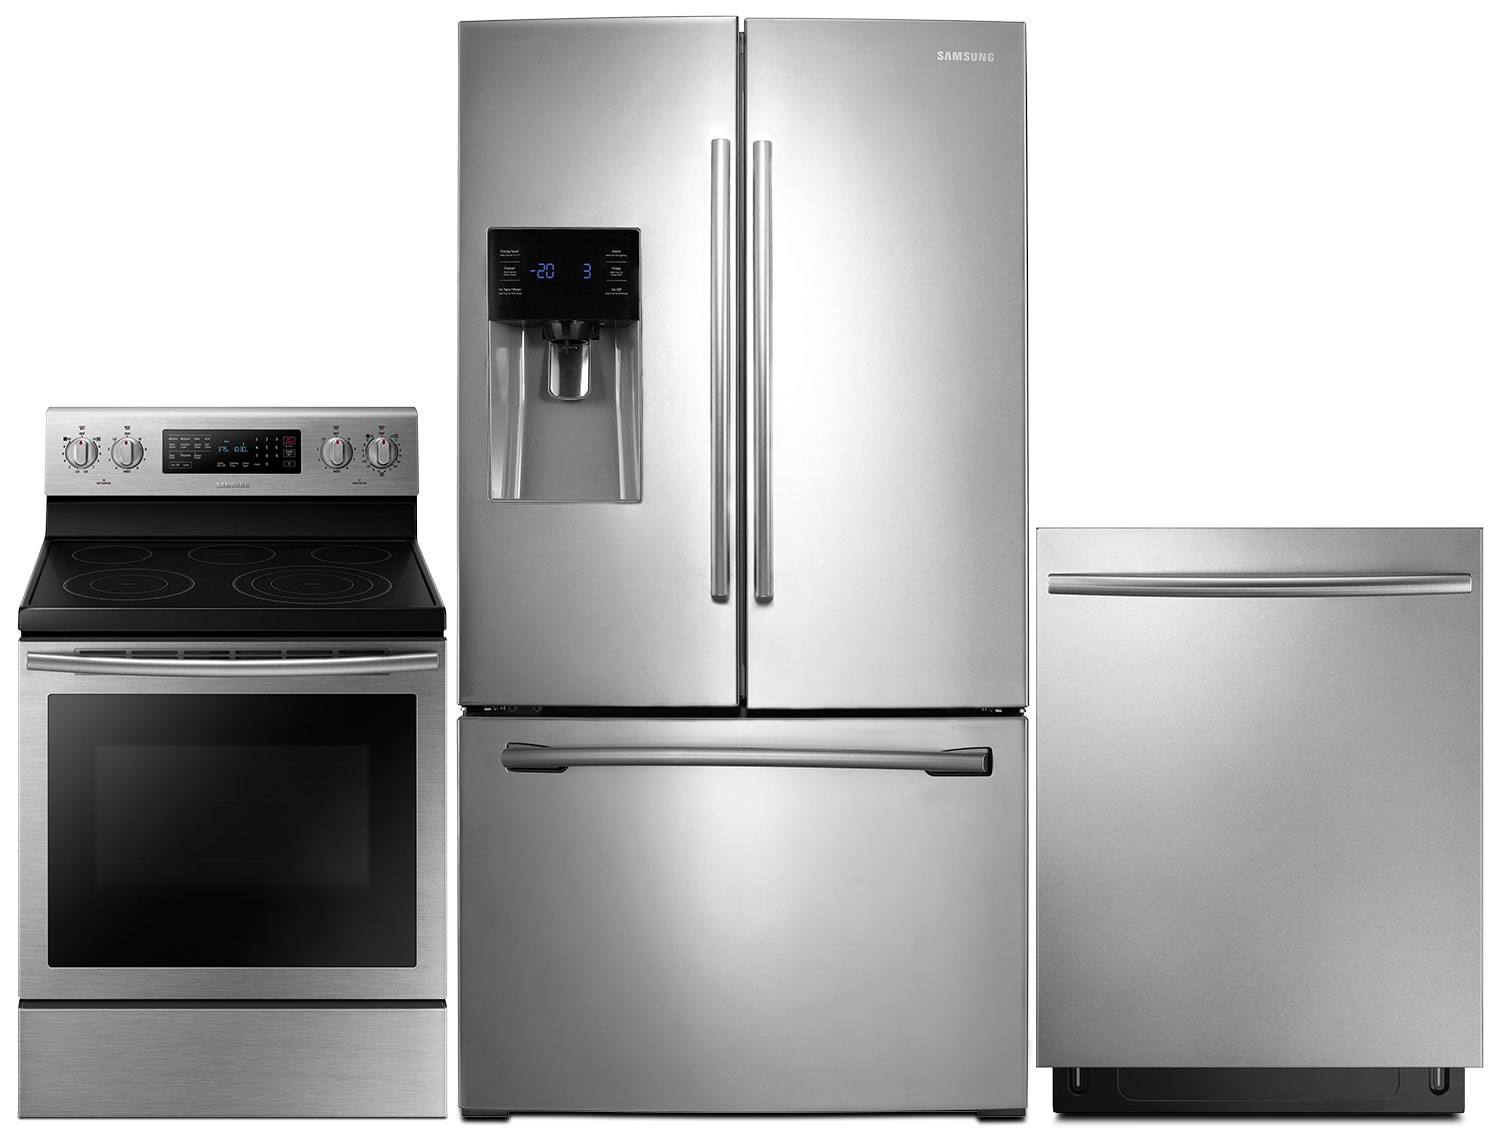 Samsung 26 Cu. Ft. French-Door Refrigerator, 5.9 Cu. Ft. Electric Range and Dishwasher